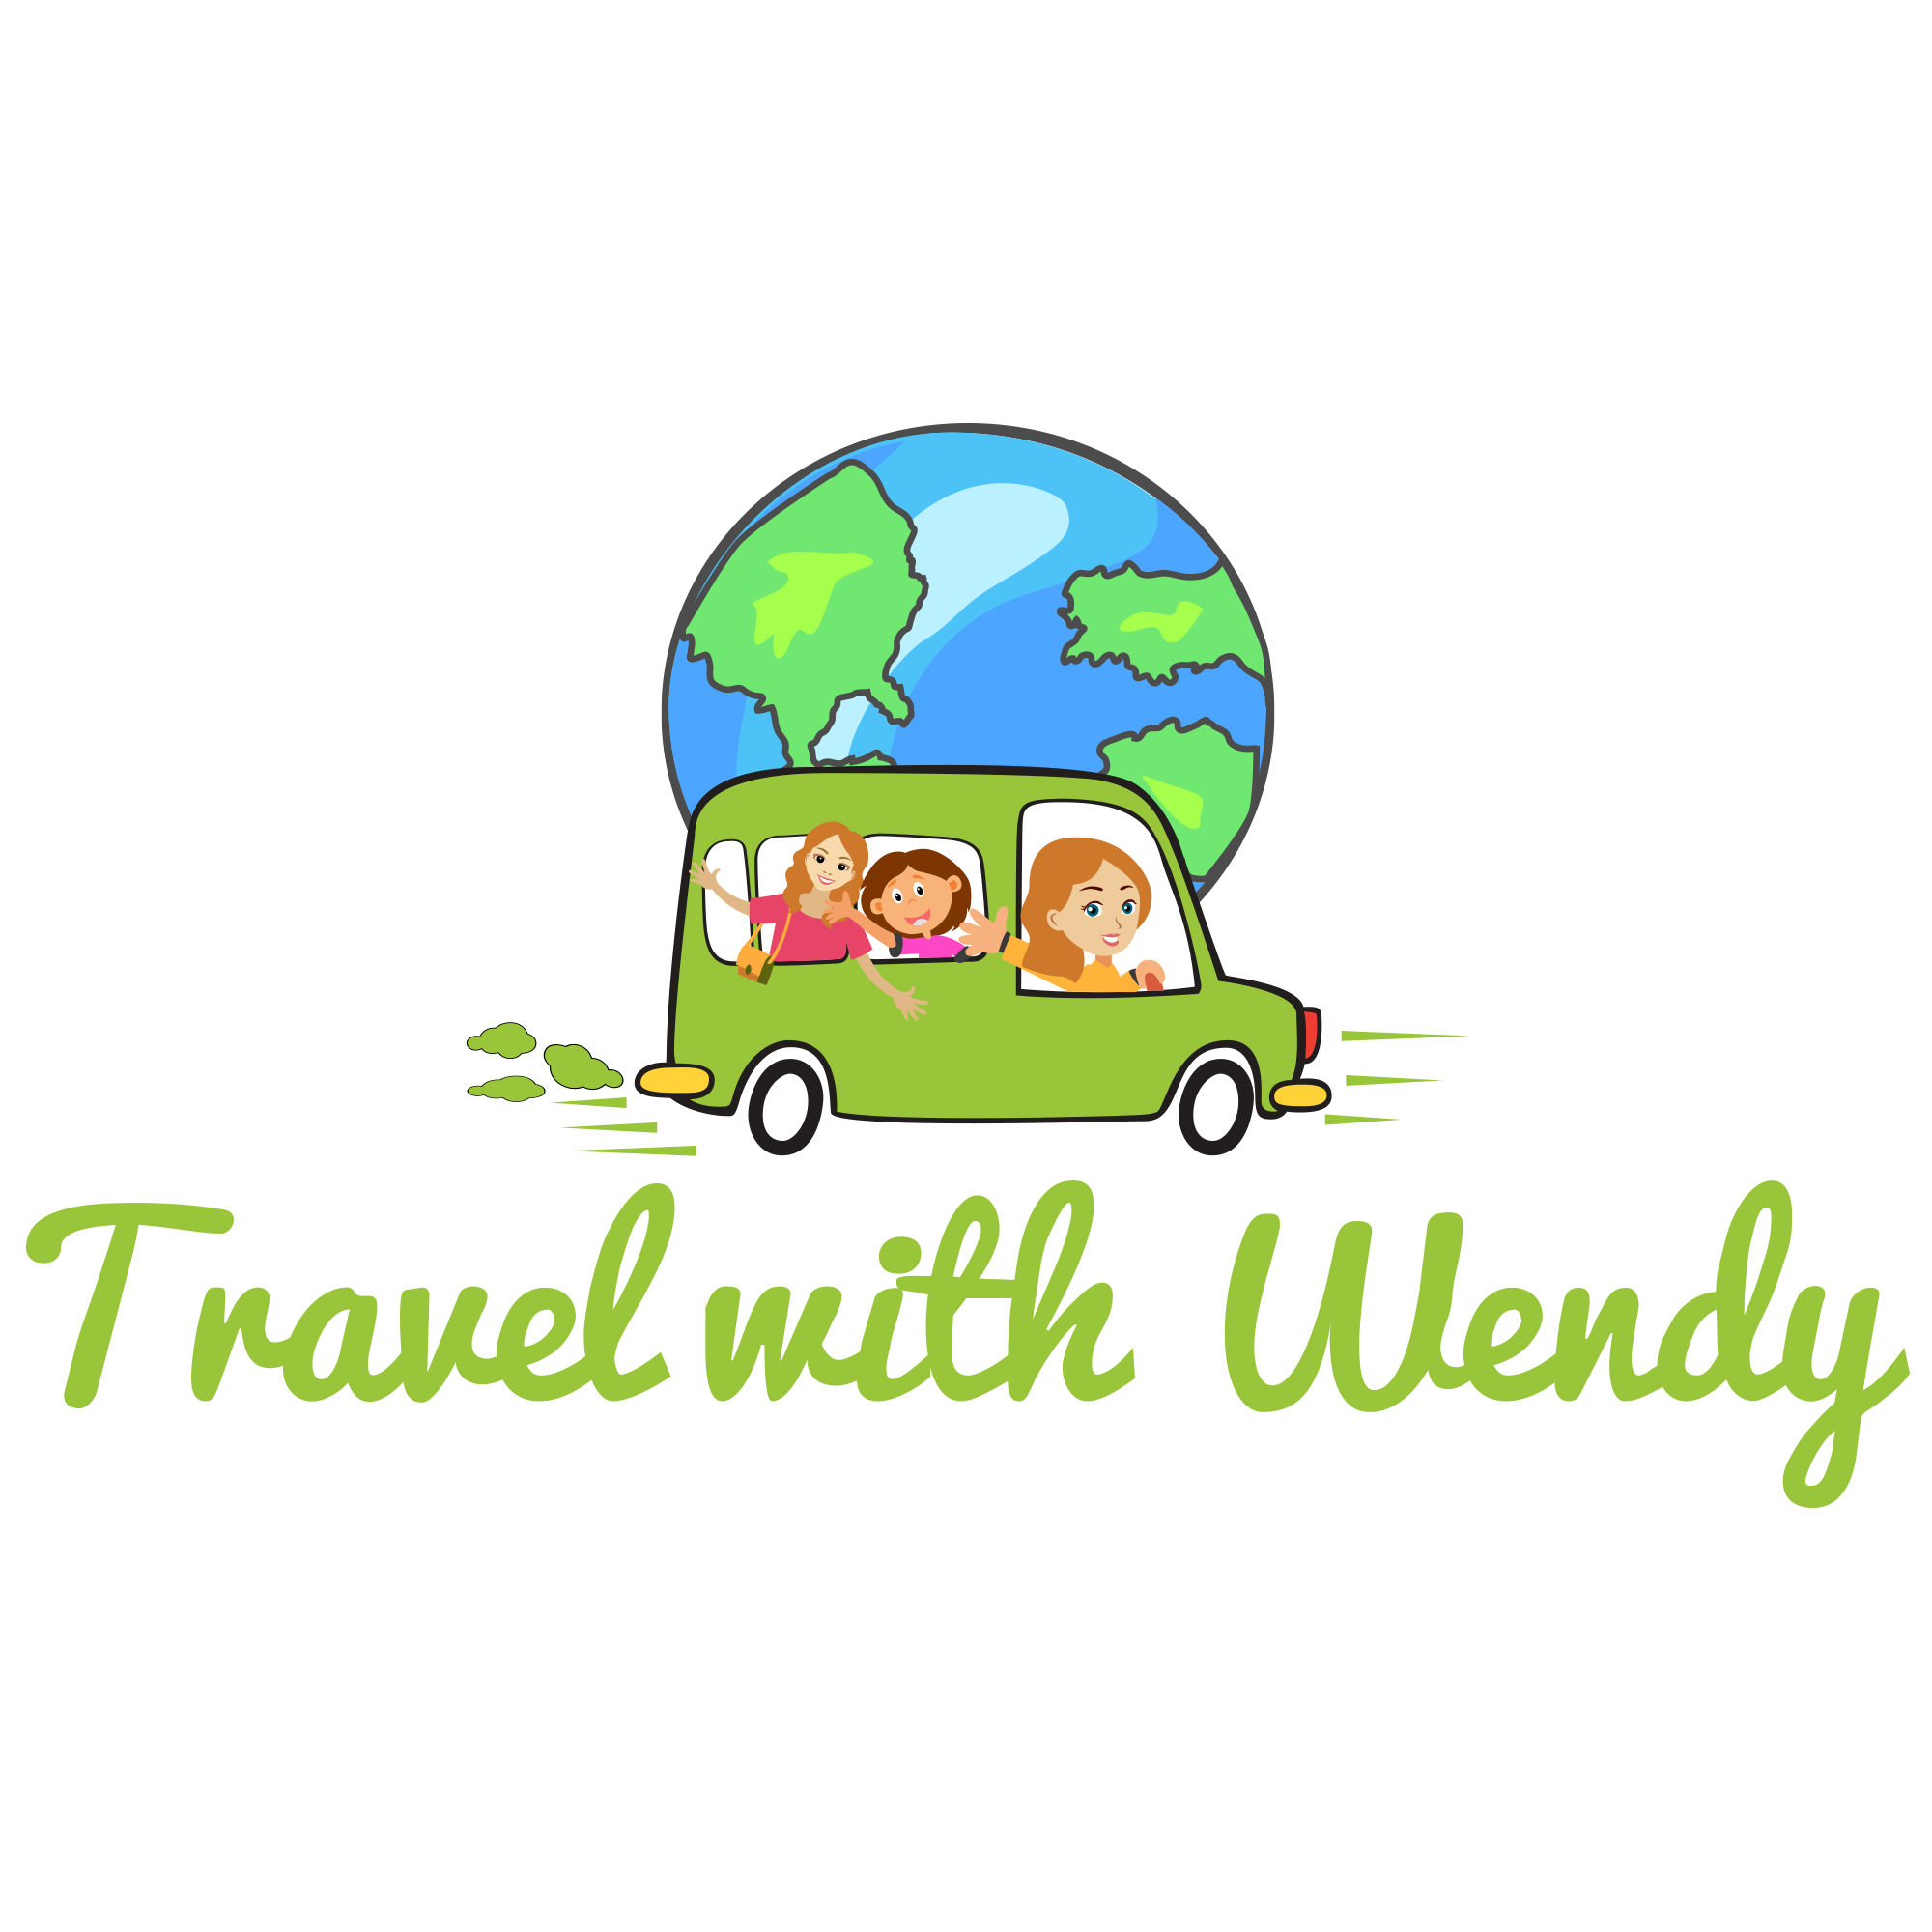 Travel with Wendy